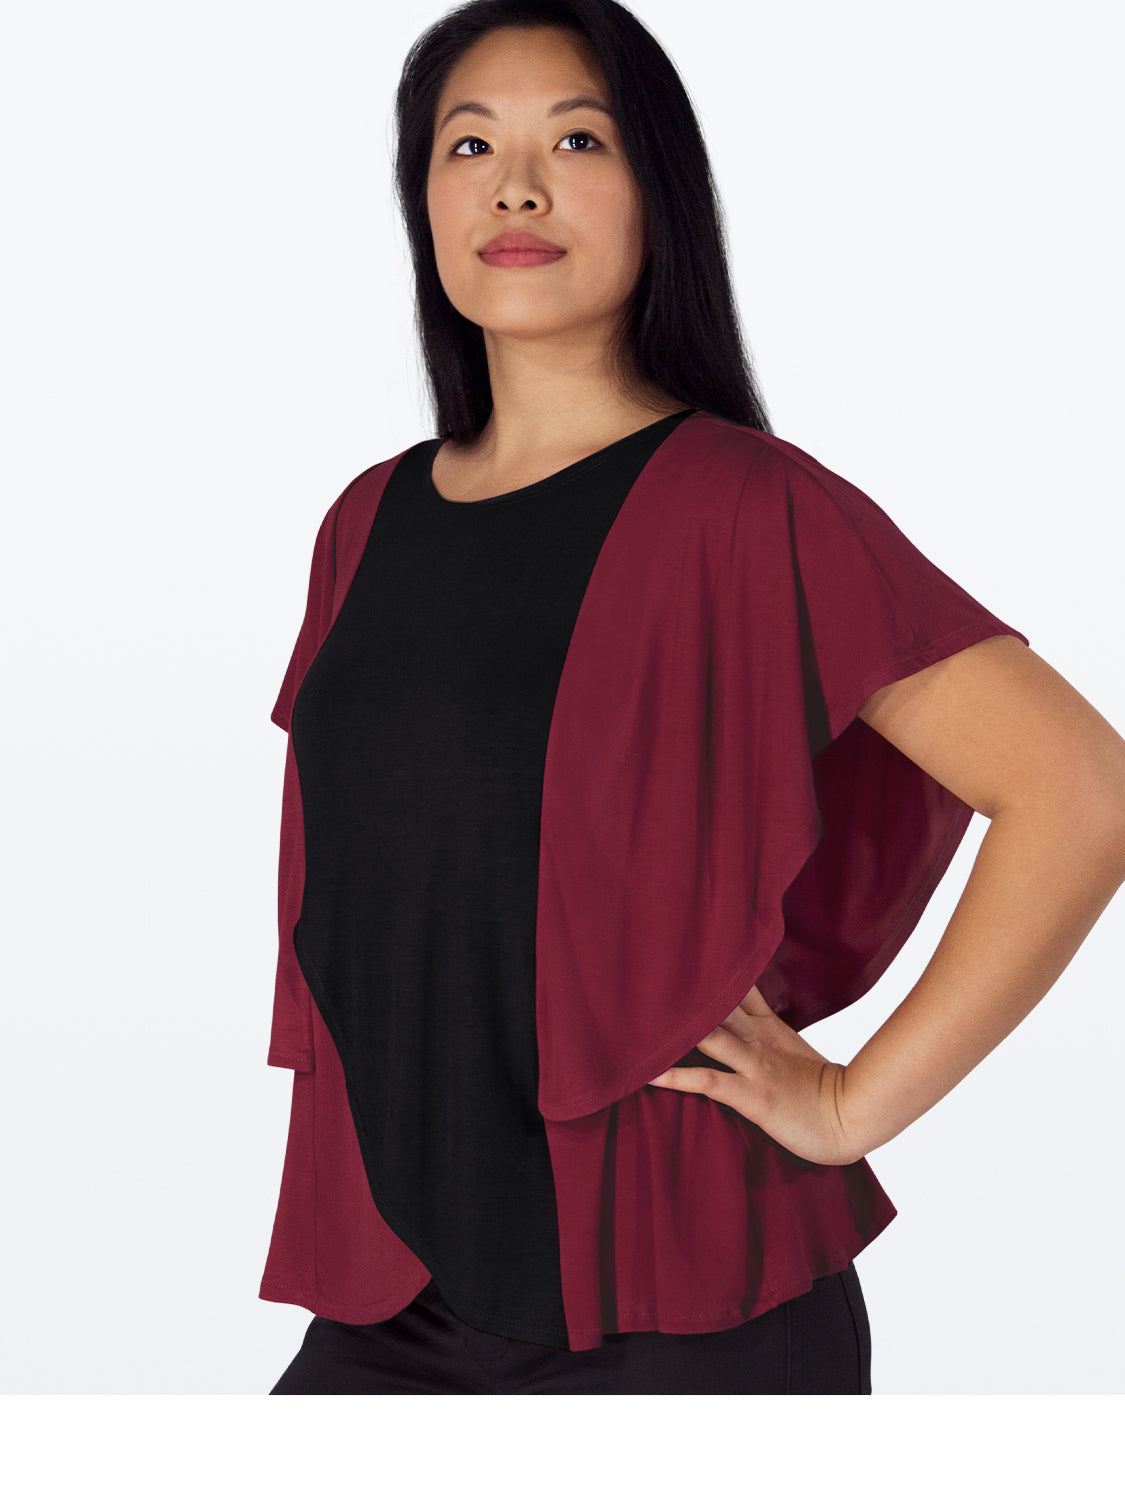 Inventory Sale: MORGAN – Flattering Top with Butterfly Sleeves (Dusty Rose & Burgundy/Black)